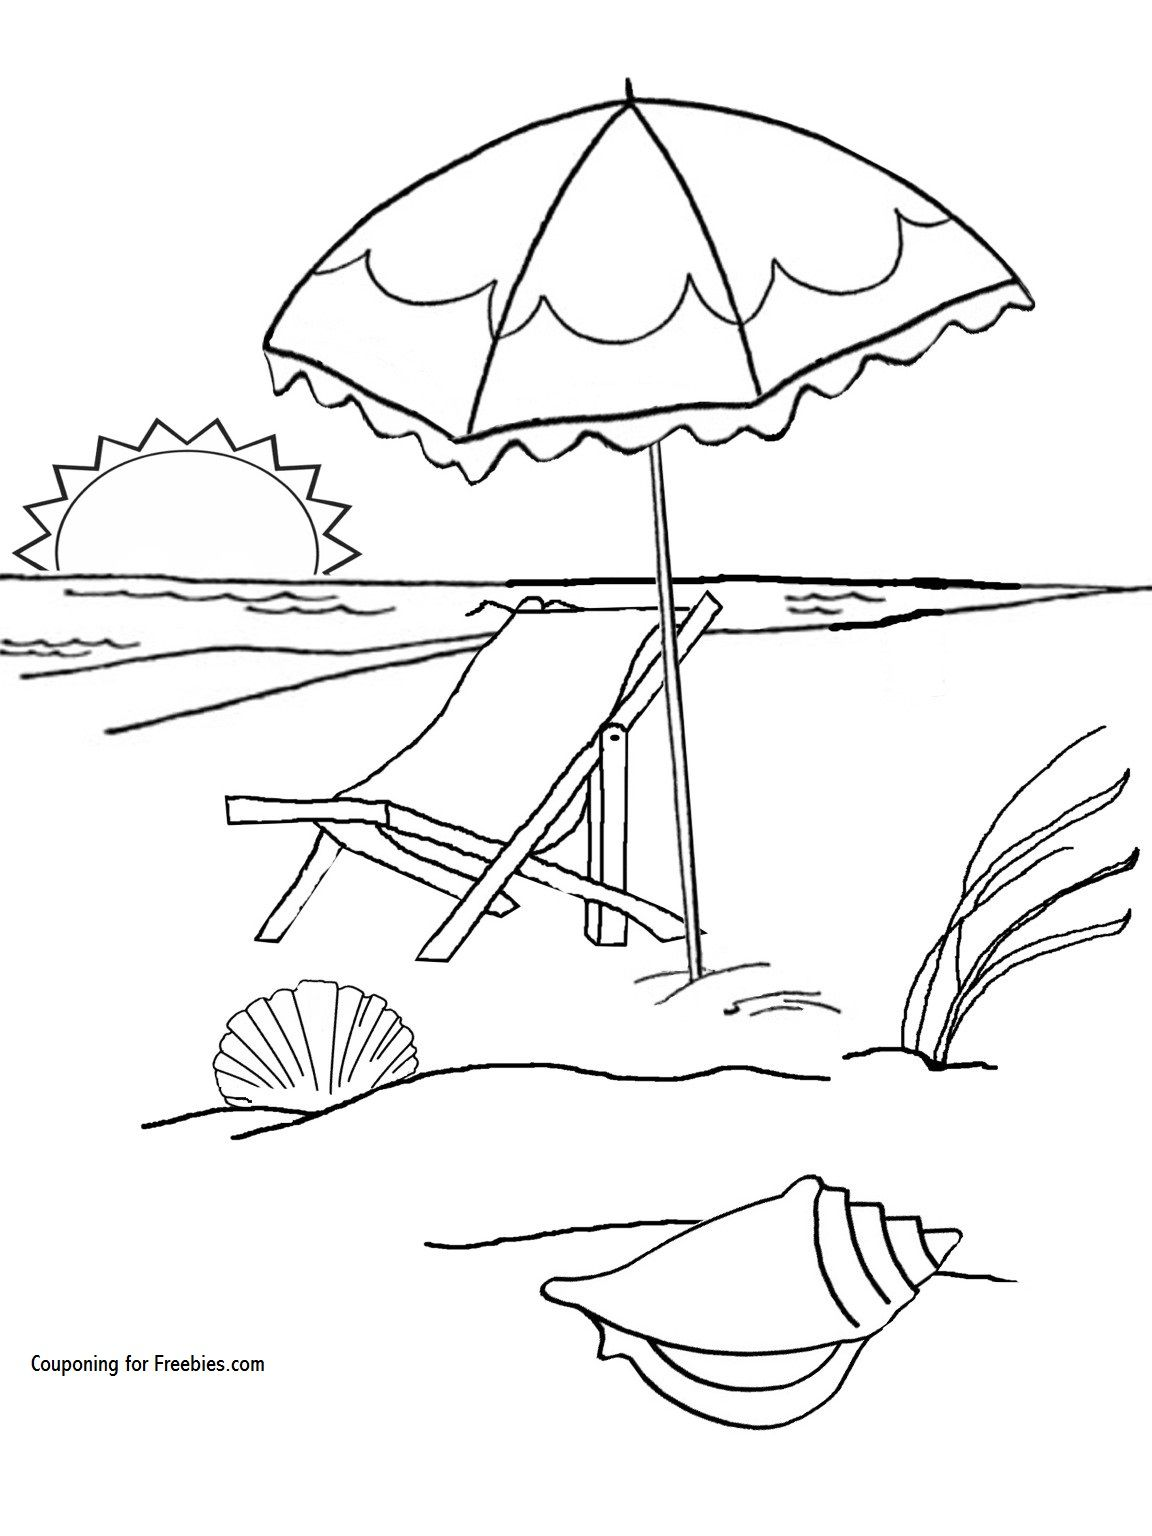 beach towel coloring sheet beach towel coloring pages getcoloringpagescom towel coloring sheet beach